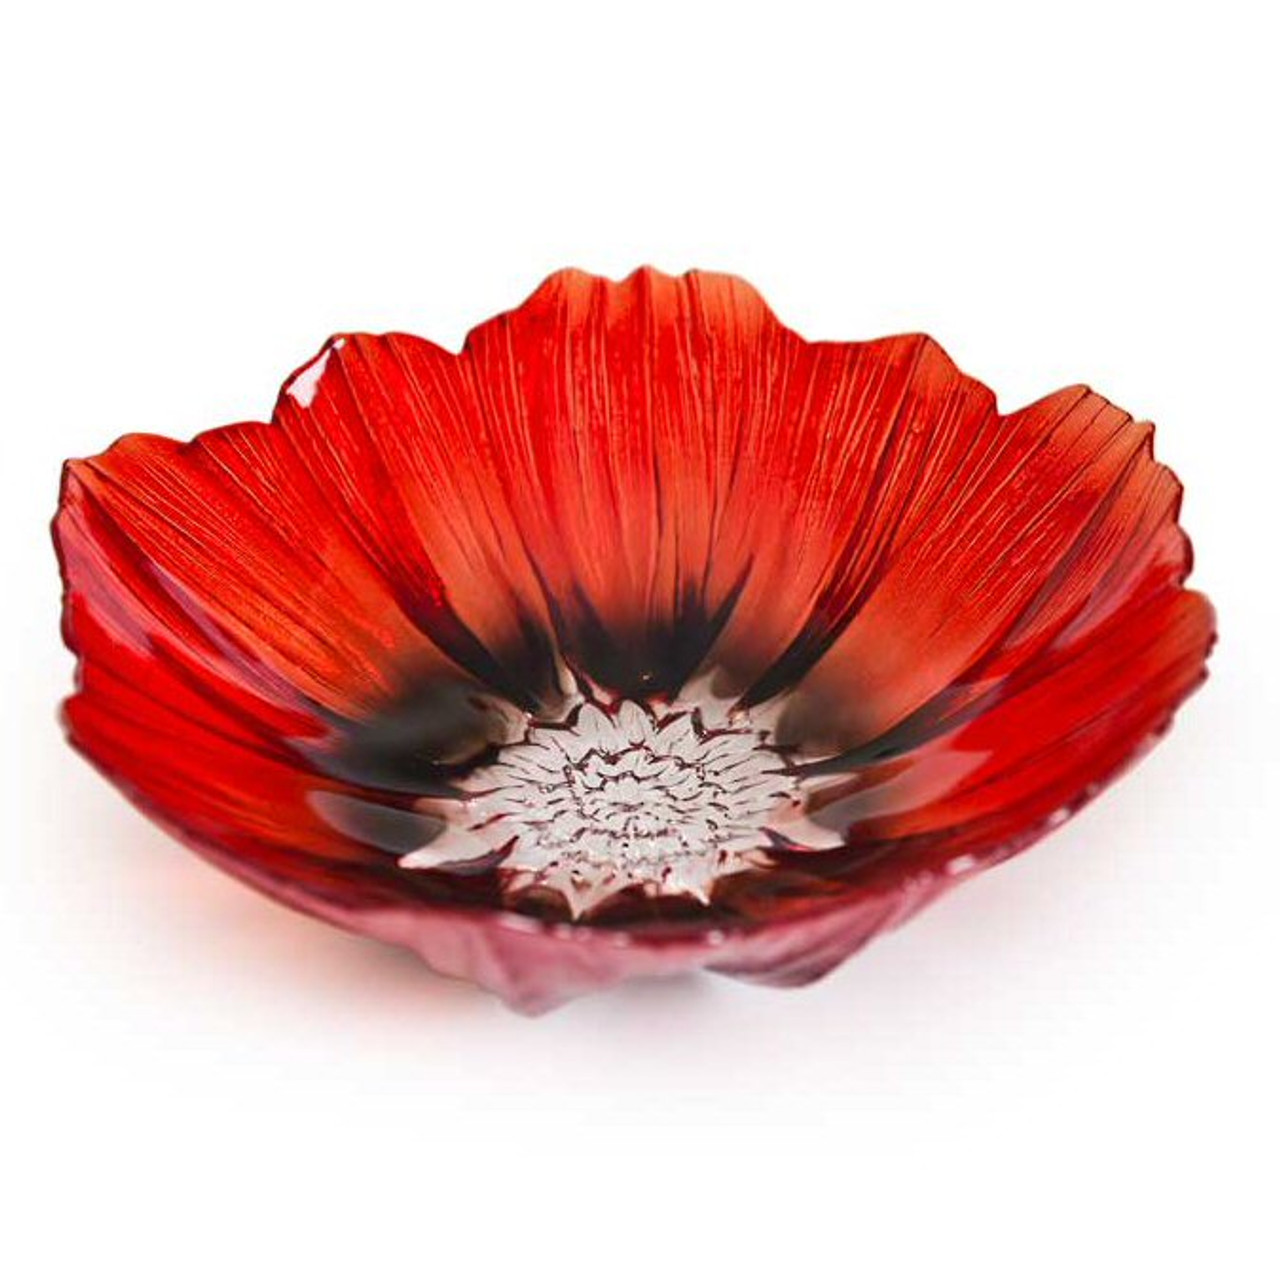 Large Red And Black Poppy Flower Crystal Bowl By Mats Jonasson Art